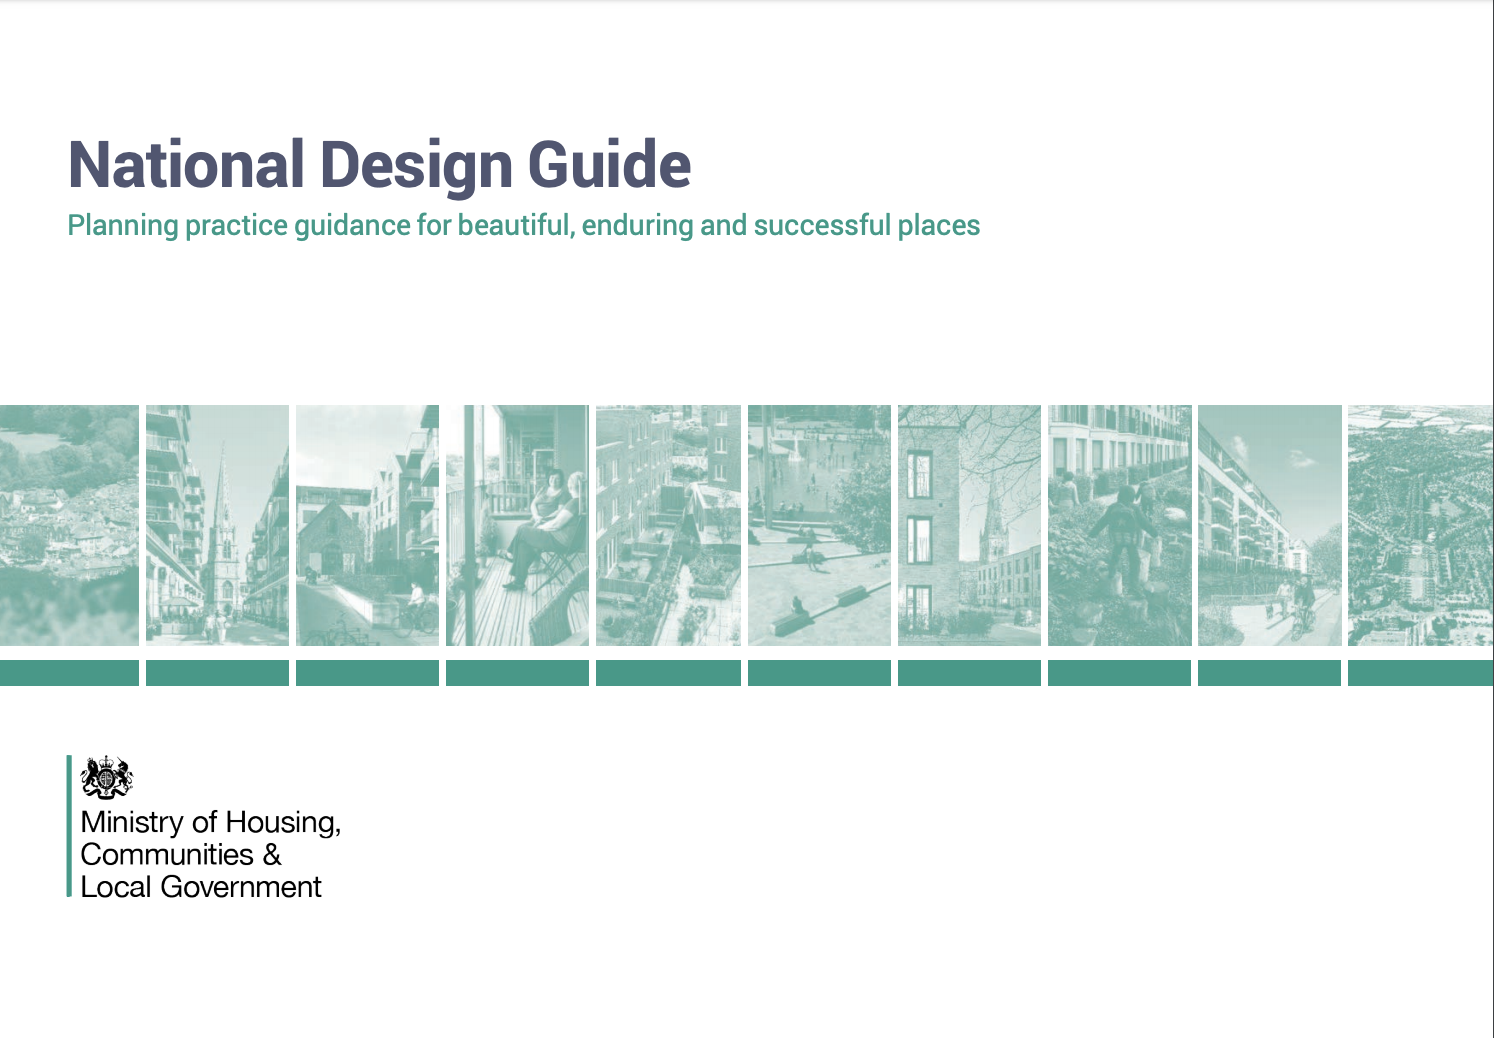 National Design Guide cover